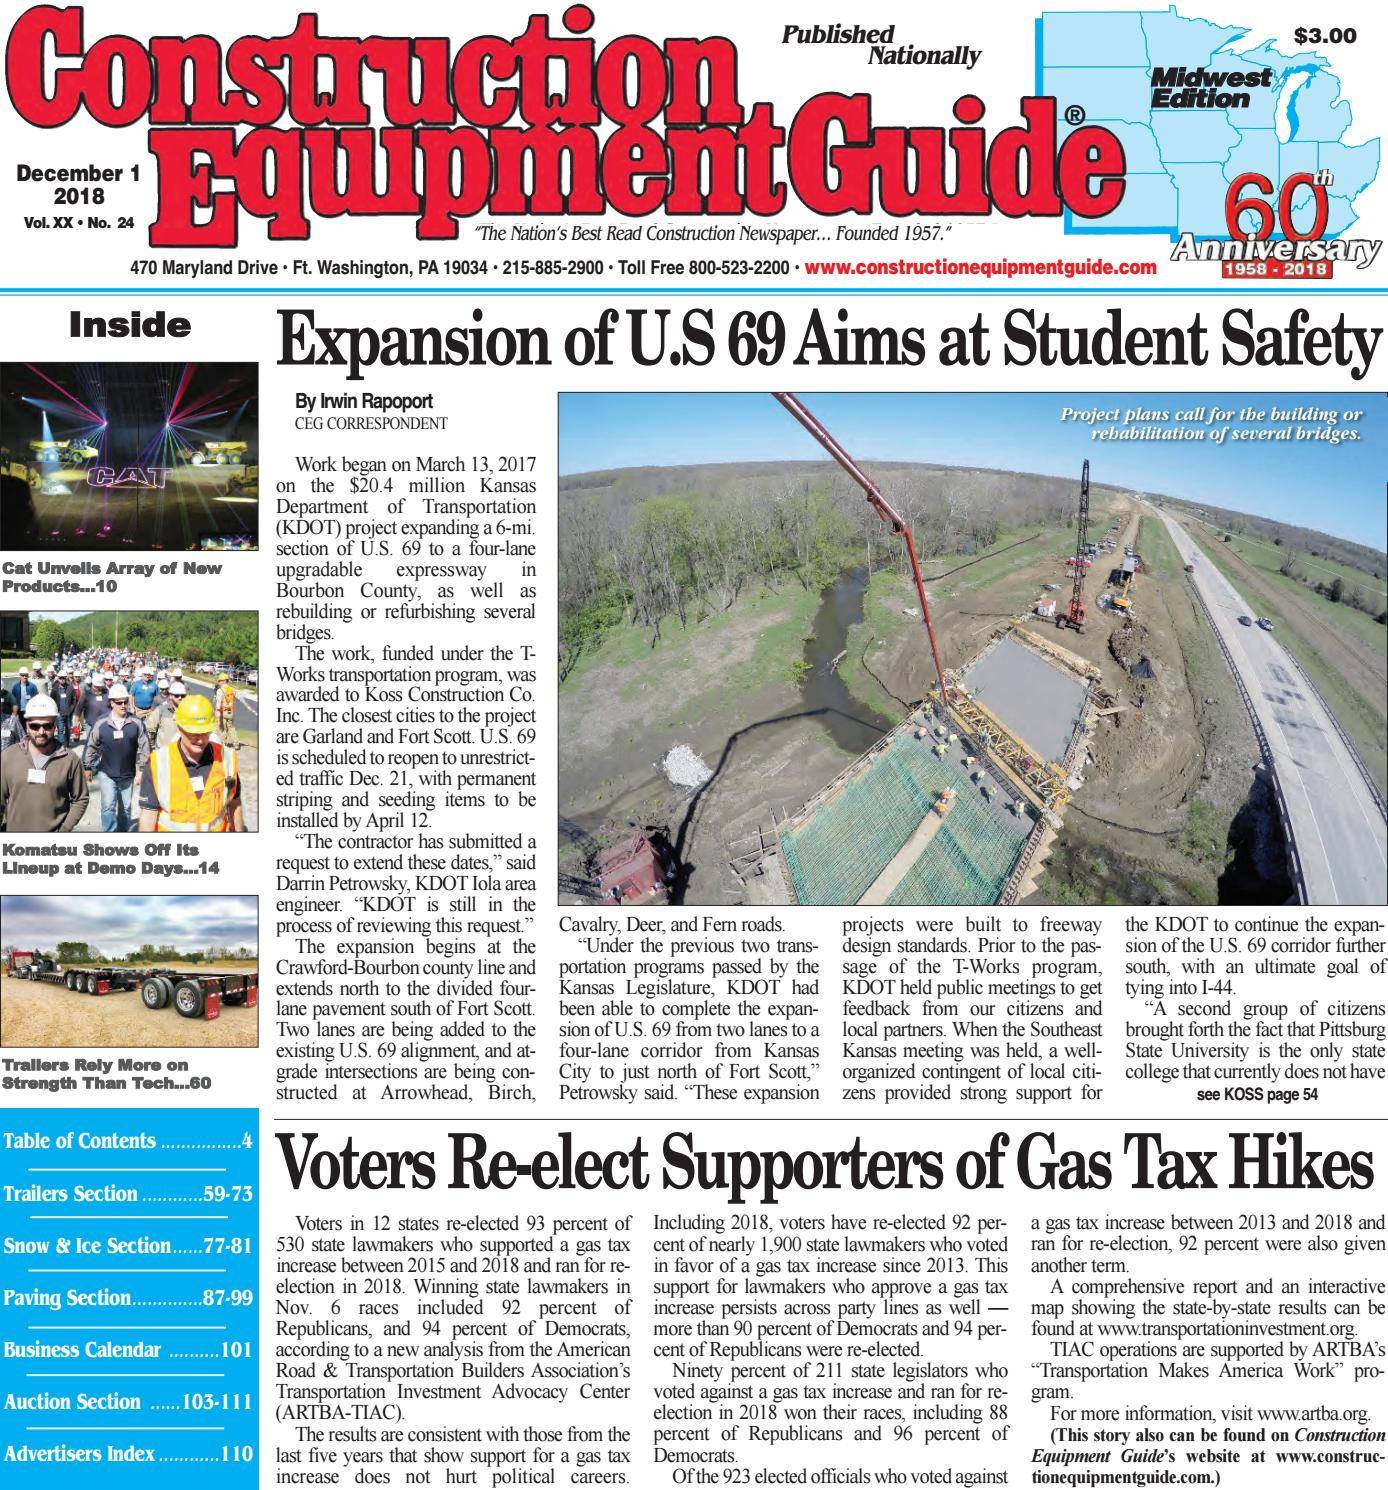 4fa2b75dd08 Midwest 24 December 1, 2018 by Construction Equipment Guide - issuu